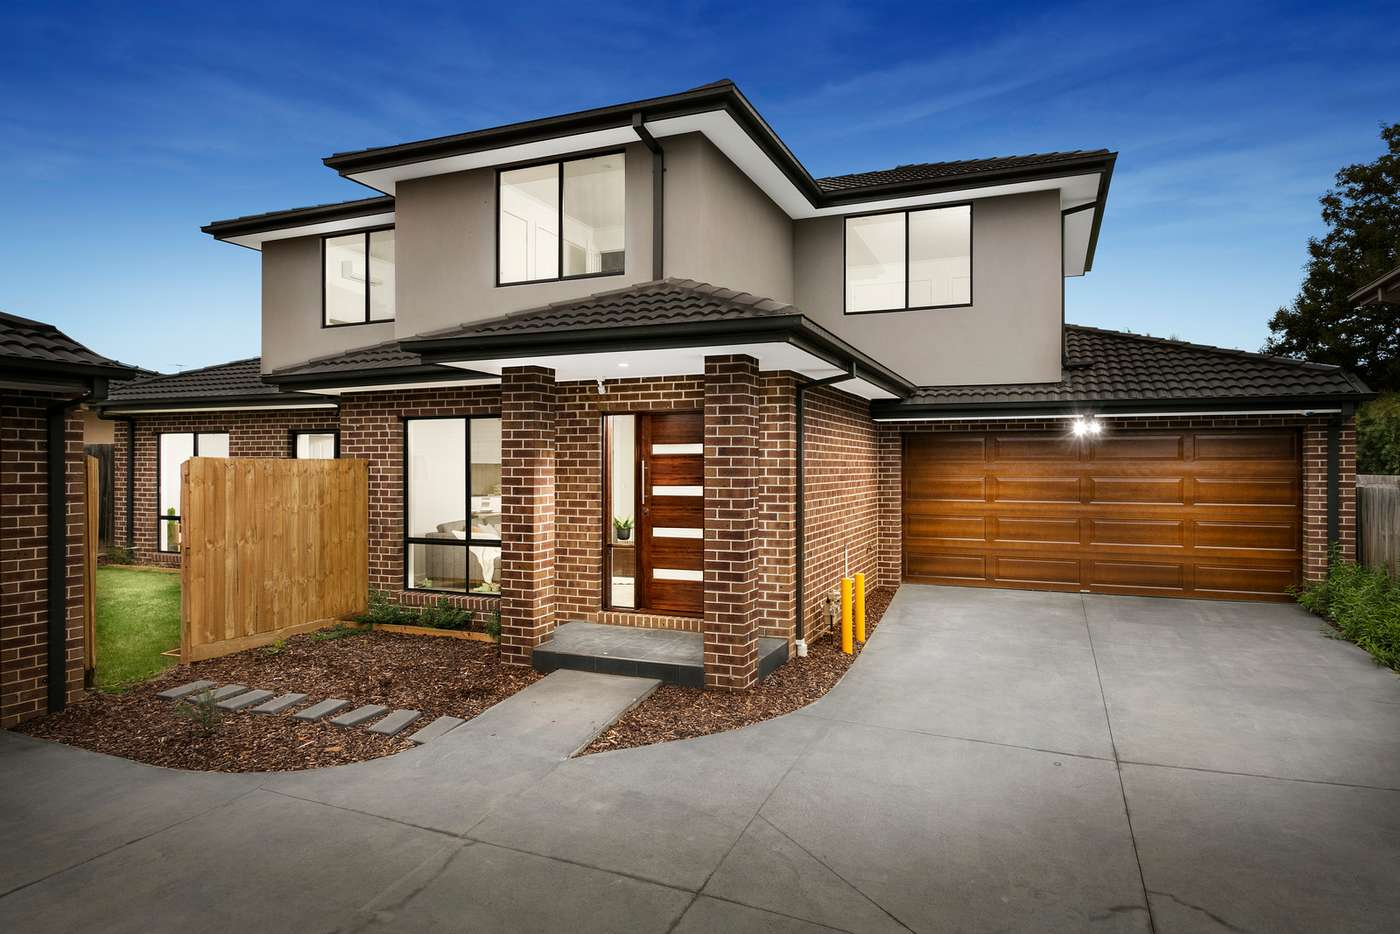 Main view of Homely house listing, 2/8 Beacon Street, Glen Waverley VIC 3150